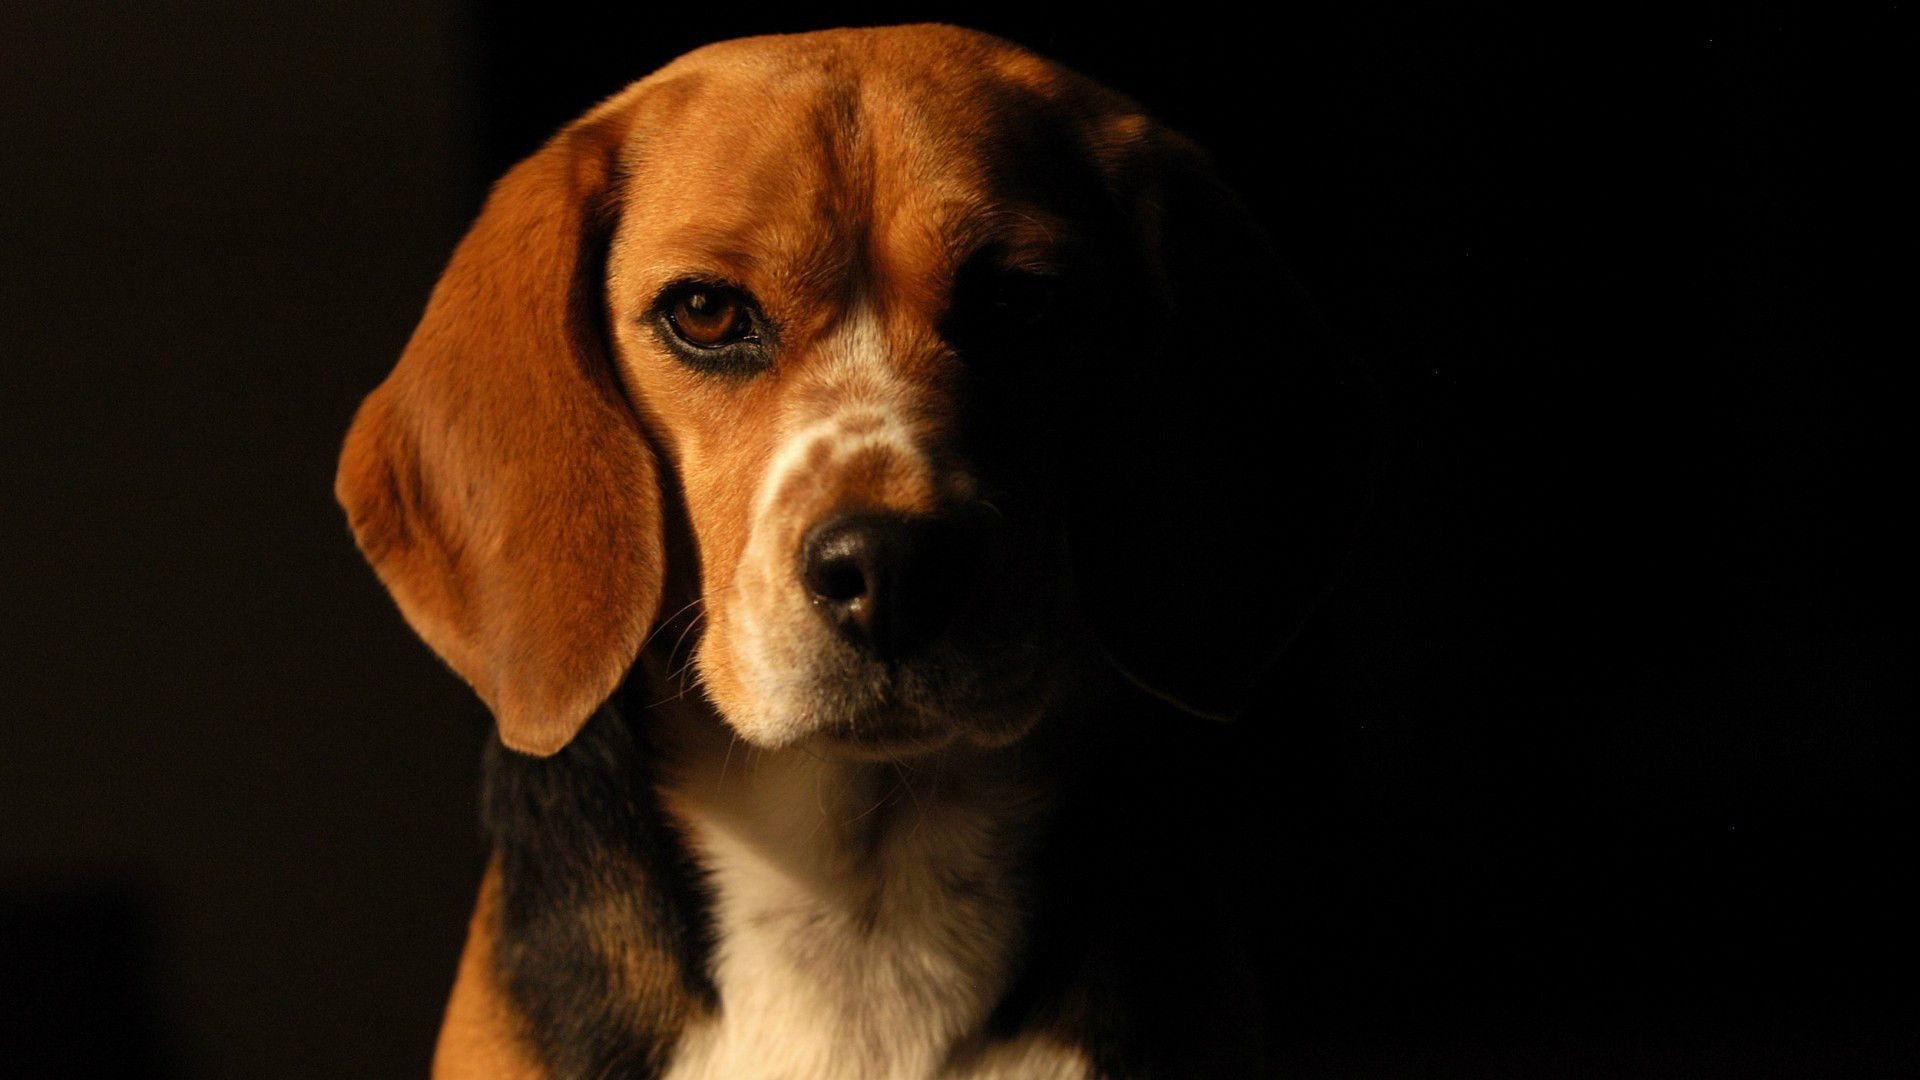 Dog Wallpapers And Photos 4k Full Hd Dog Wallpaper Beagle Dog Dogs